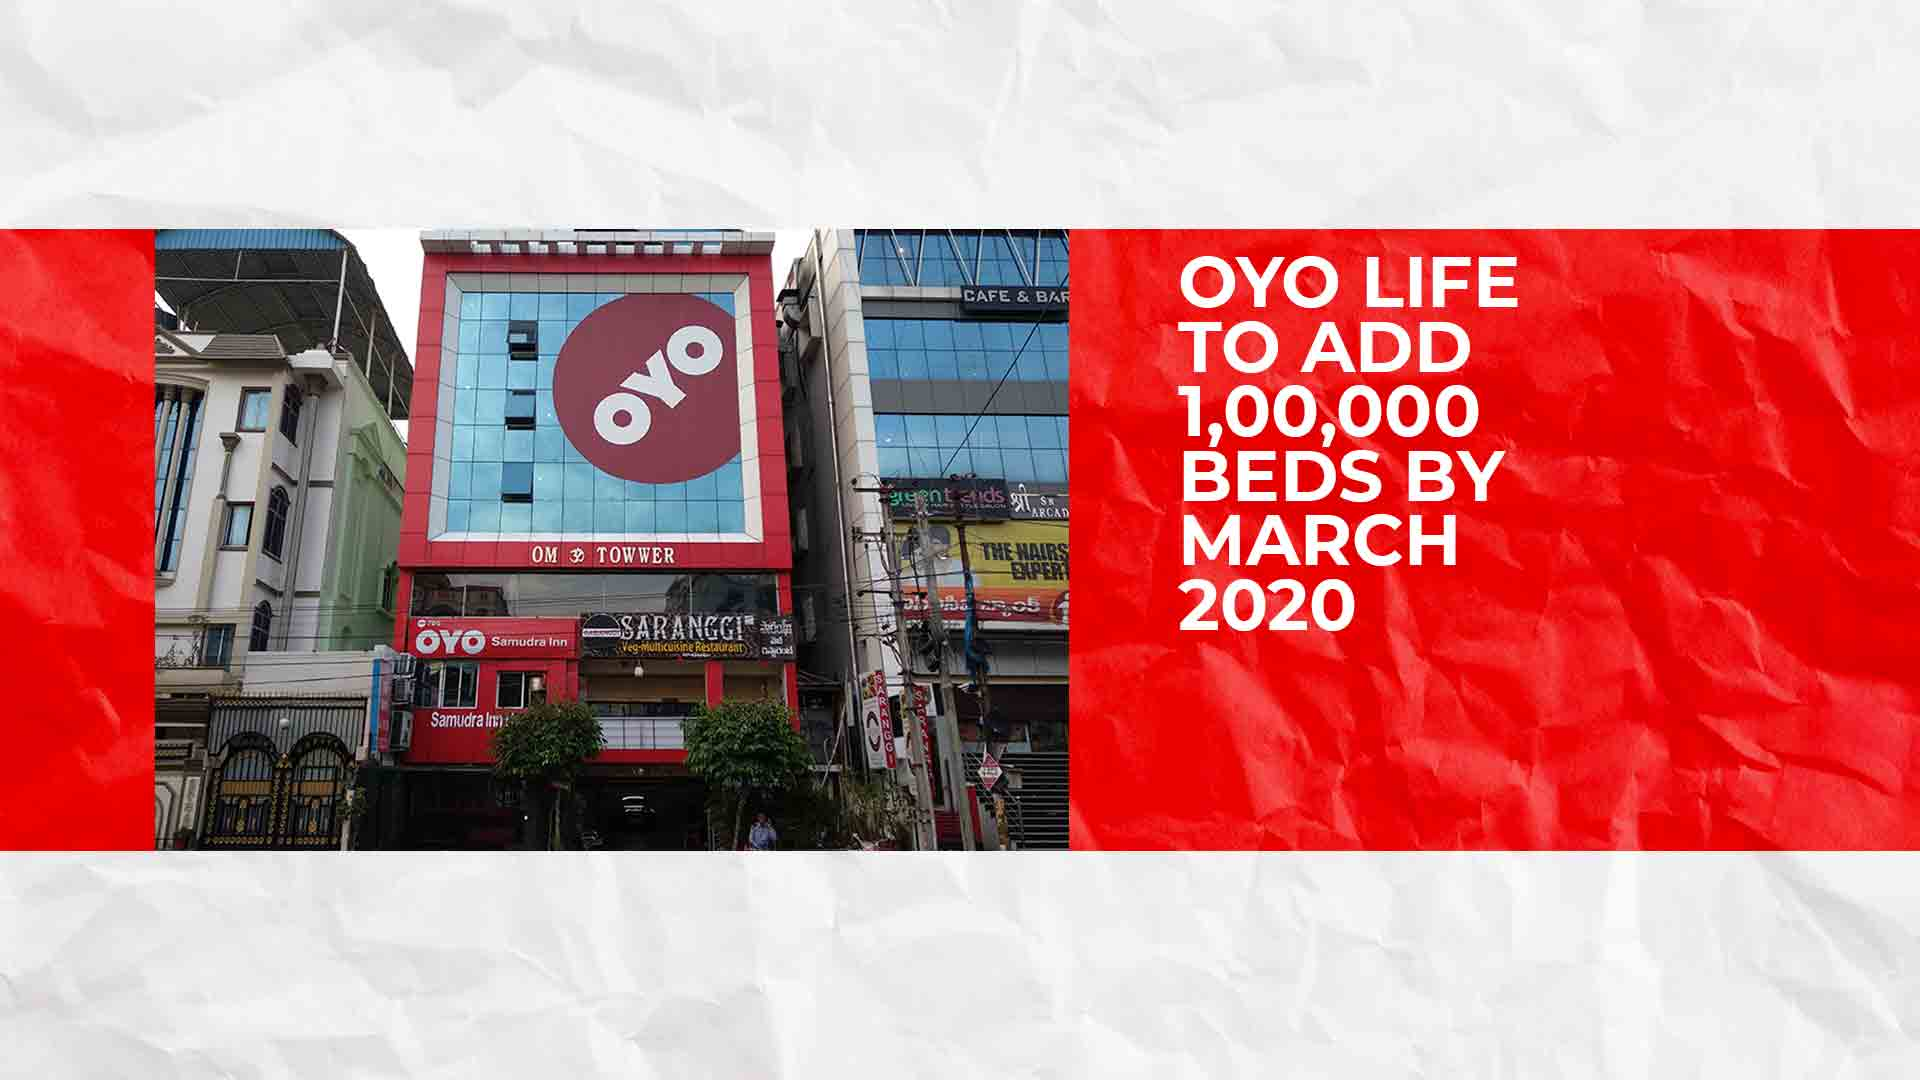 oyo life to add beds